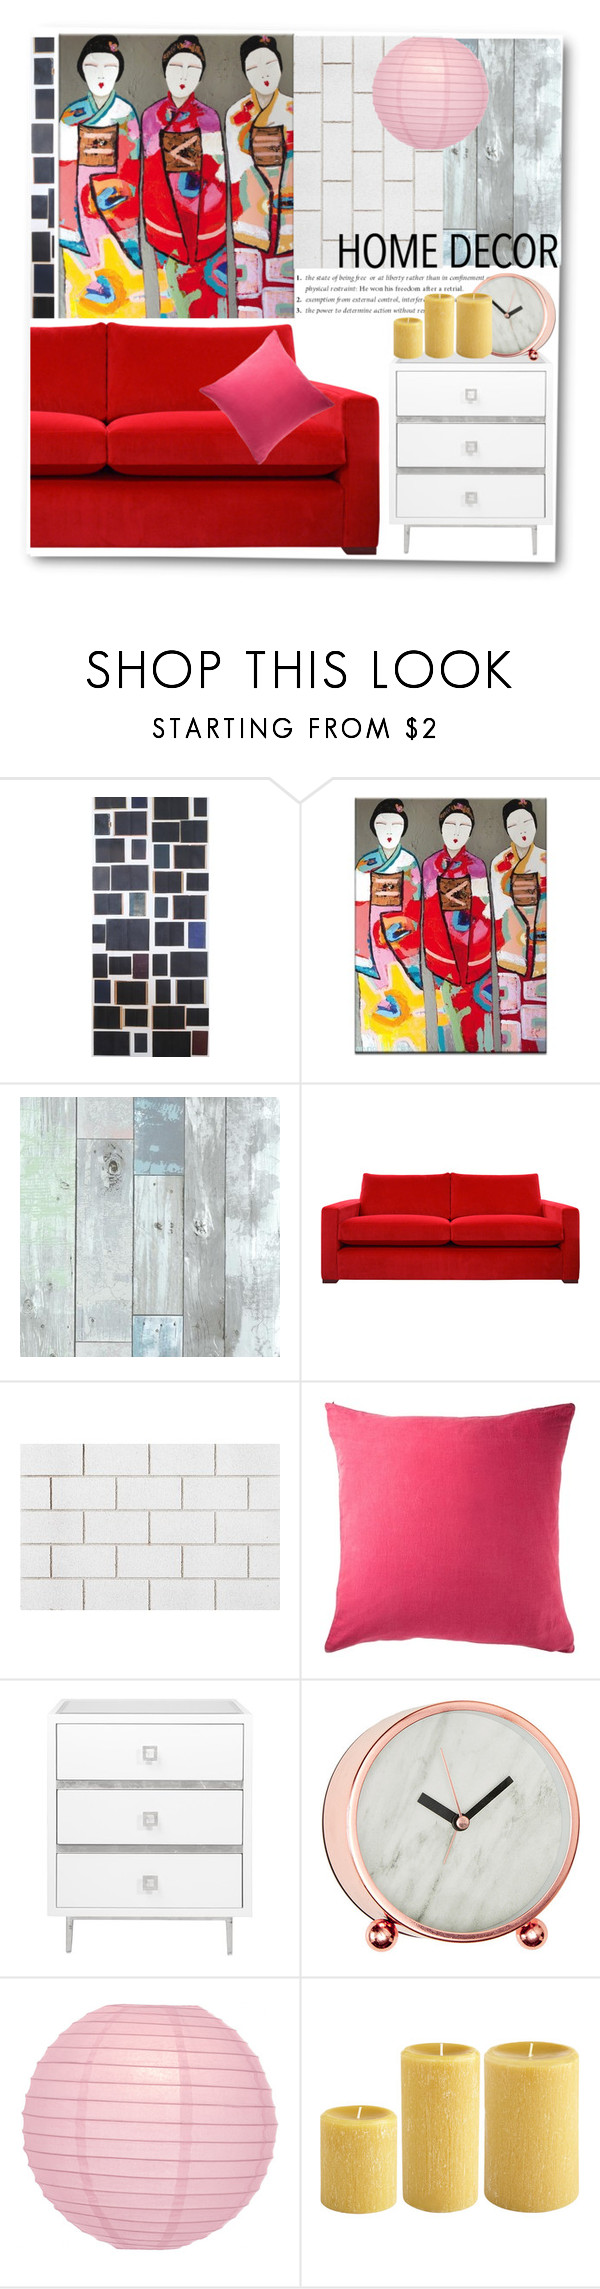 """""""Geisha print"""" by gul07 ❤ liked on Polyvore featuring interior, interiors, interior design, home, home decor, interior decorating, Eka, CB2 and Cultural Intrigue"""